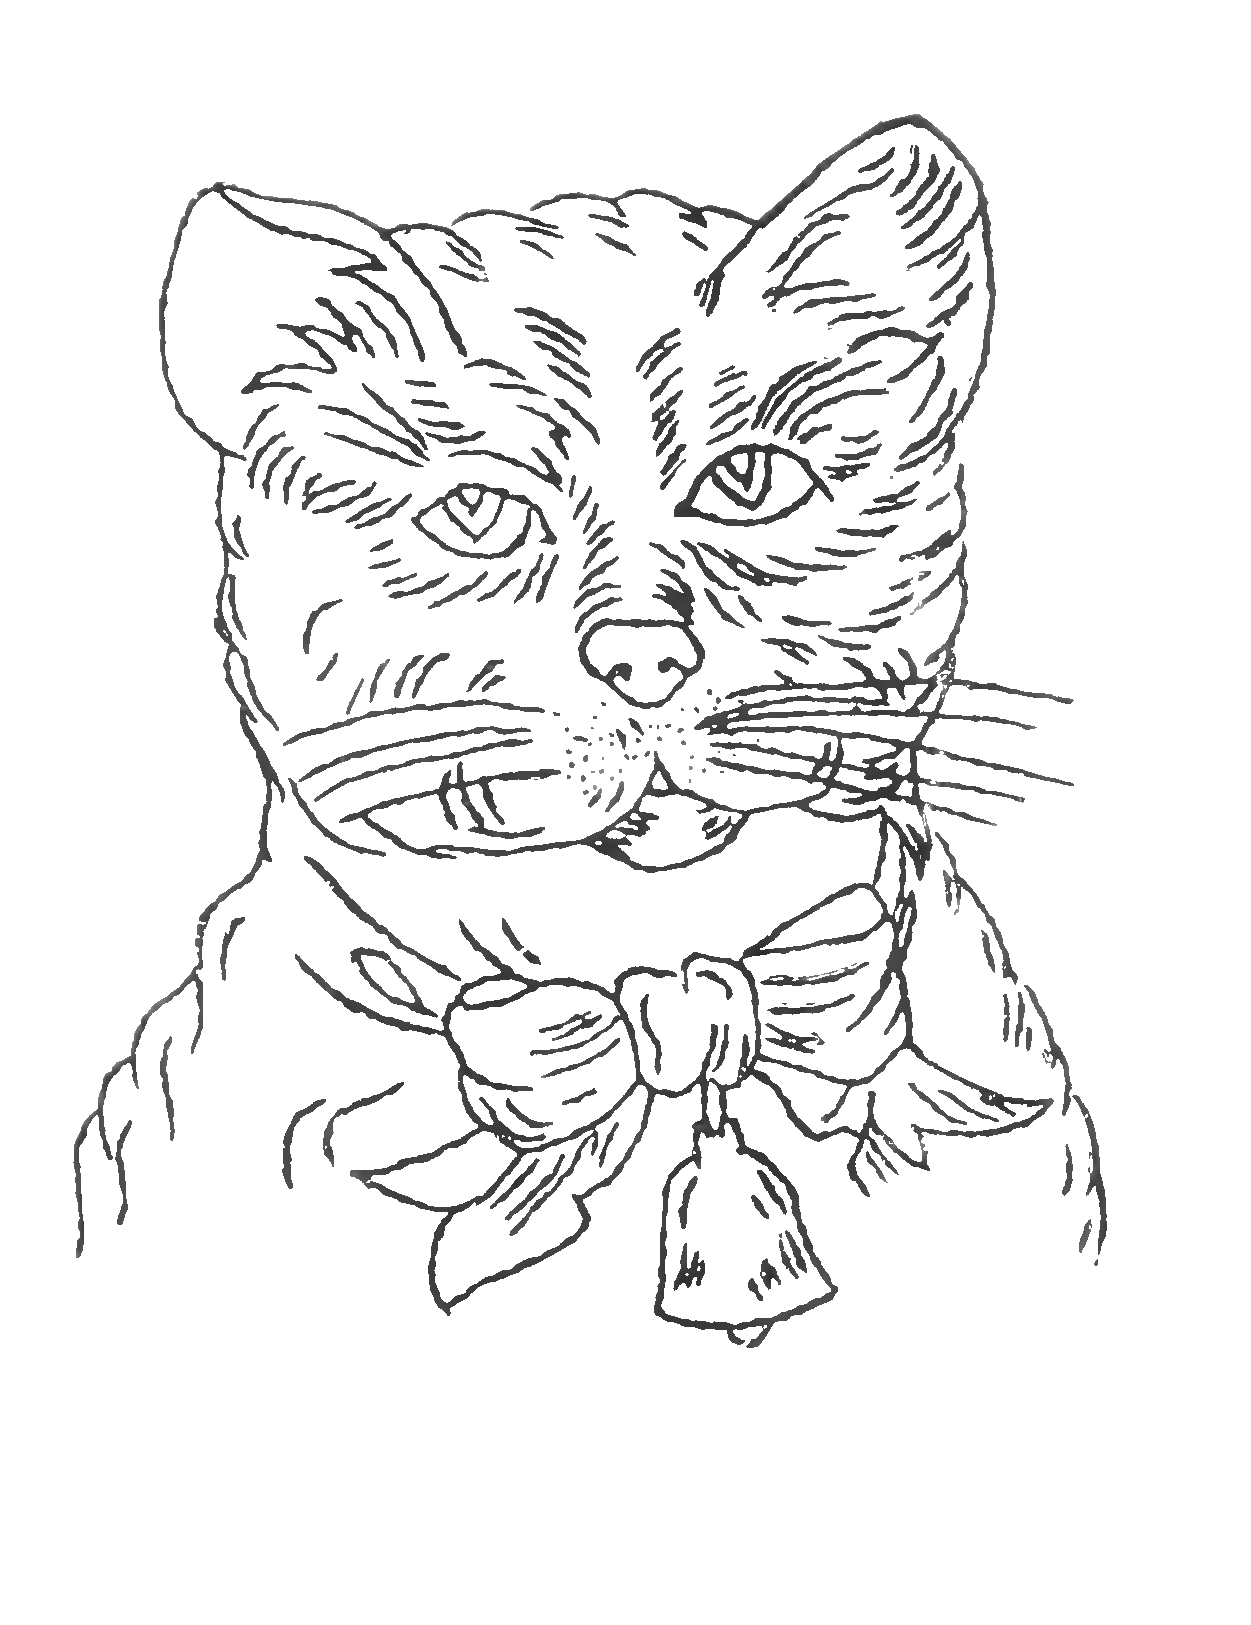 Embroidery patterns archives the graffical muse free victorian embroidery pattern cat bankloansurffo Image collections